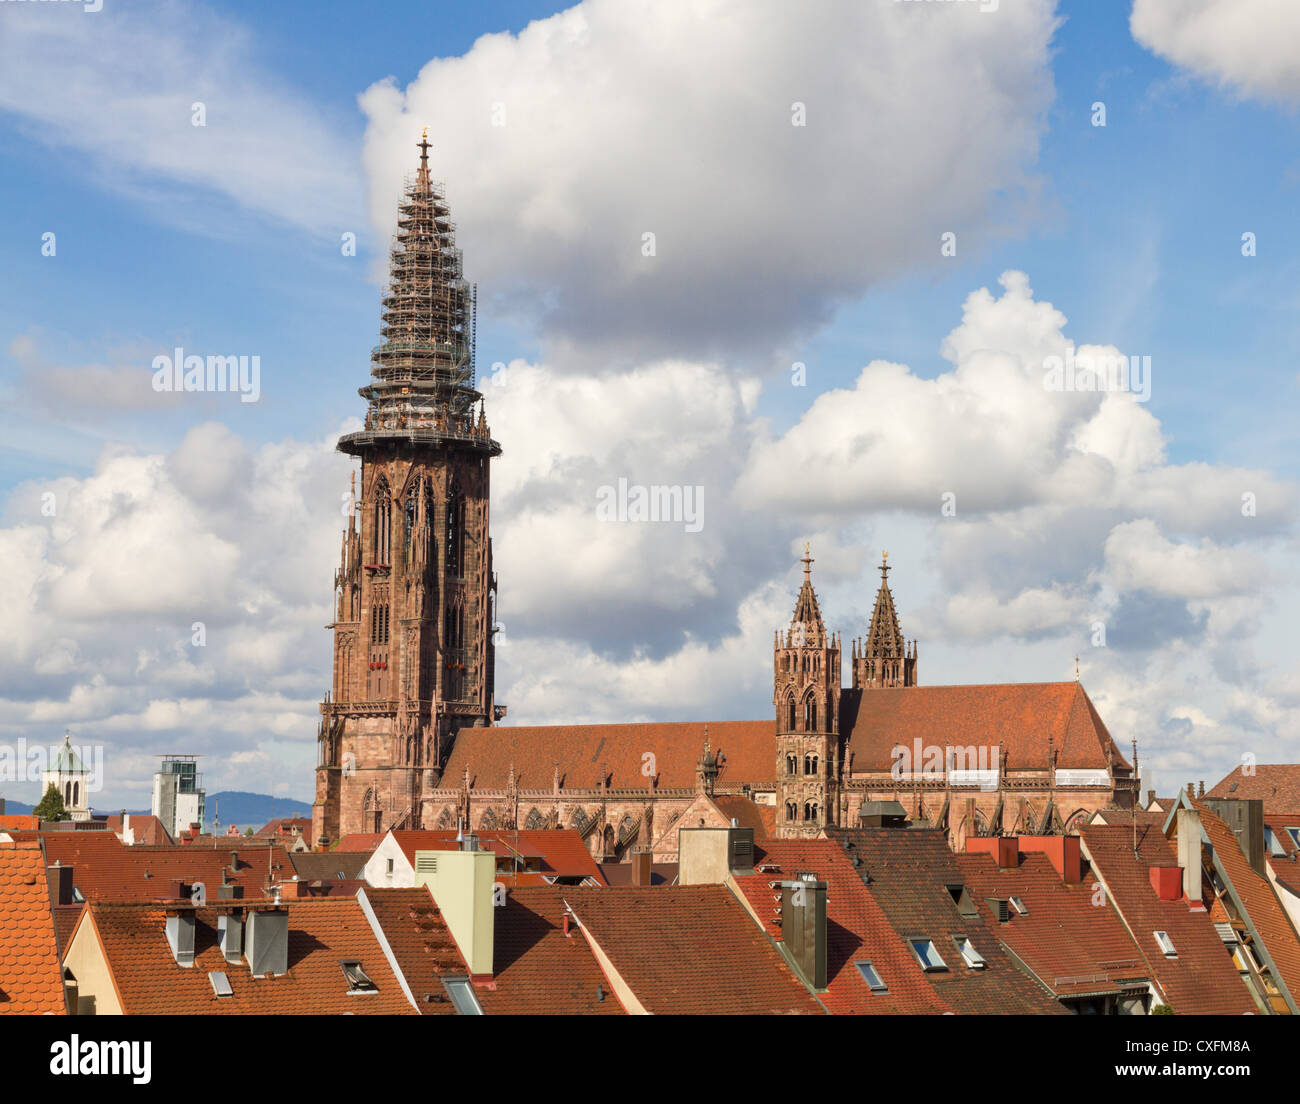 Old houses and minster with high tower of Gothic town, Freiburg im Breisgau minster Germany. - Stock Image